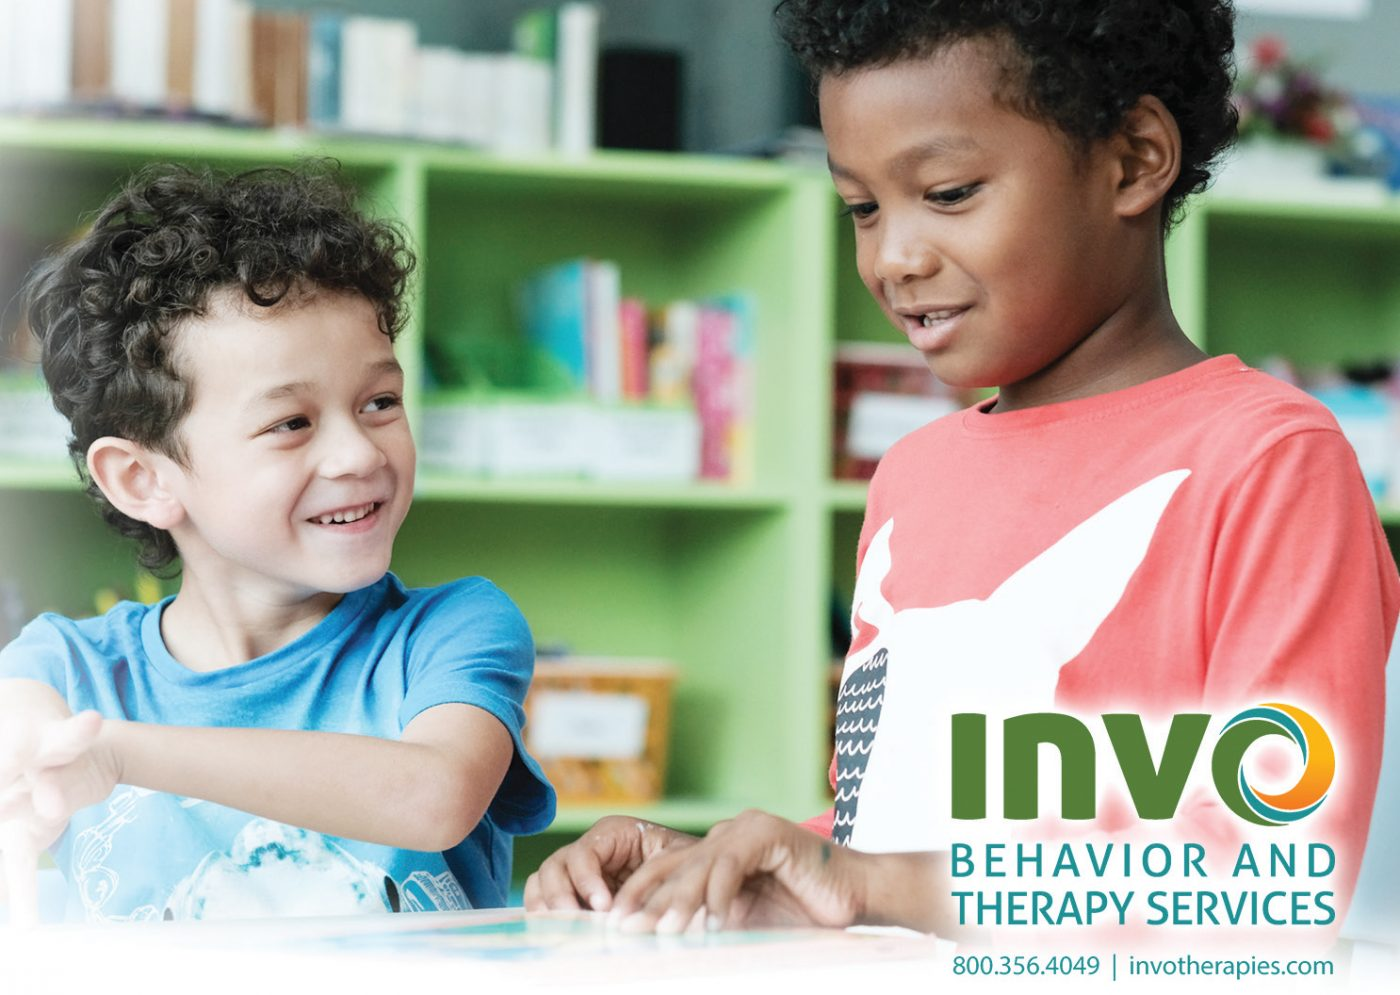 INVO Behavior and Therapy Services. Shows two little boys playing together and smiling,